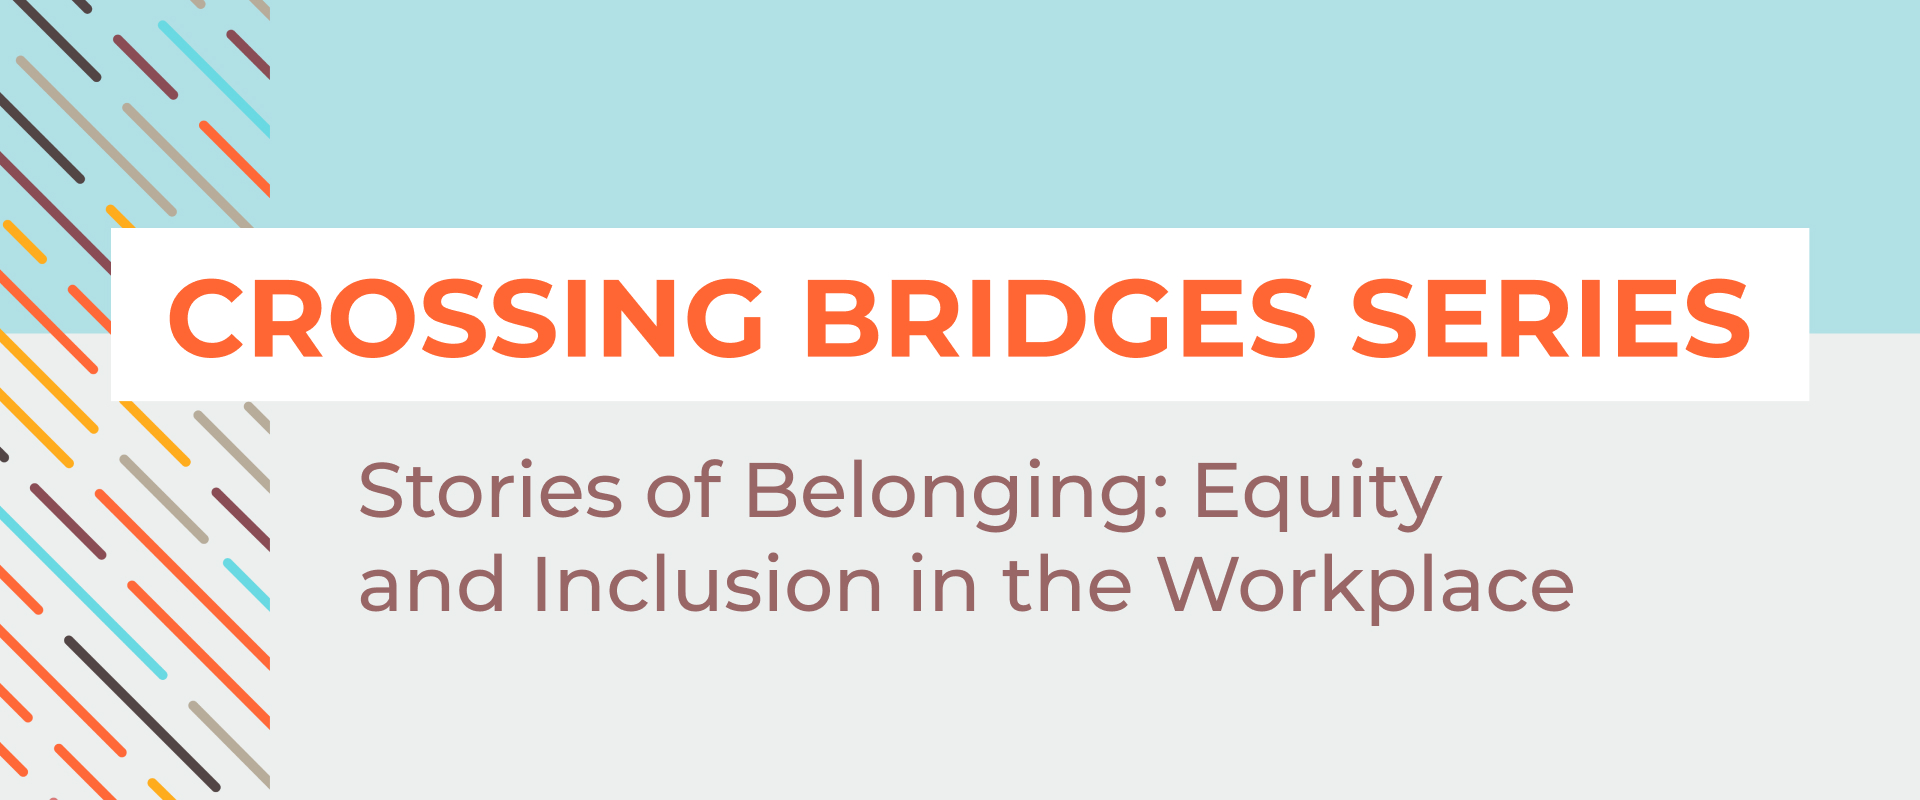 Crossing Bridges Series: Stories of Belonging: Equity and Inclusion in the Workplace